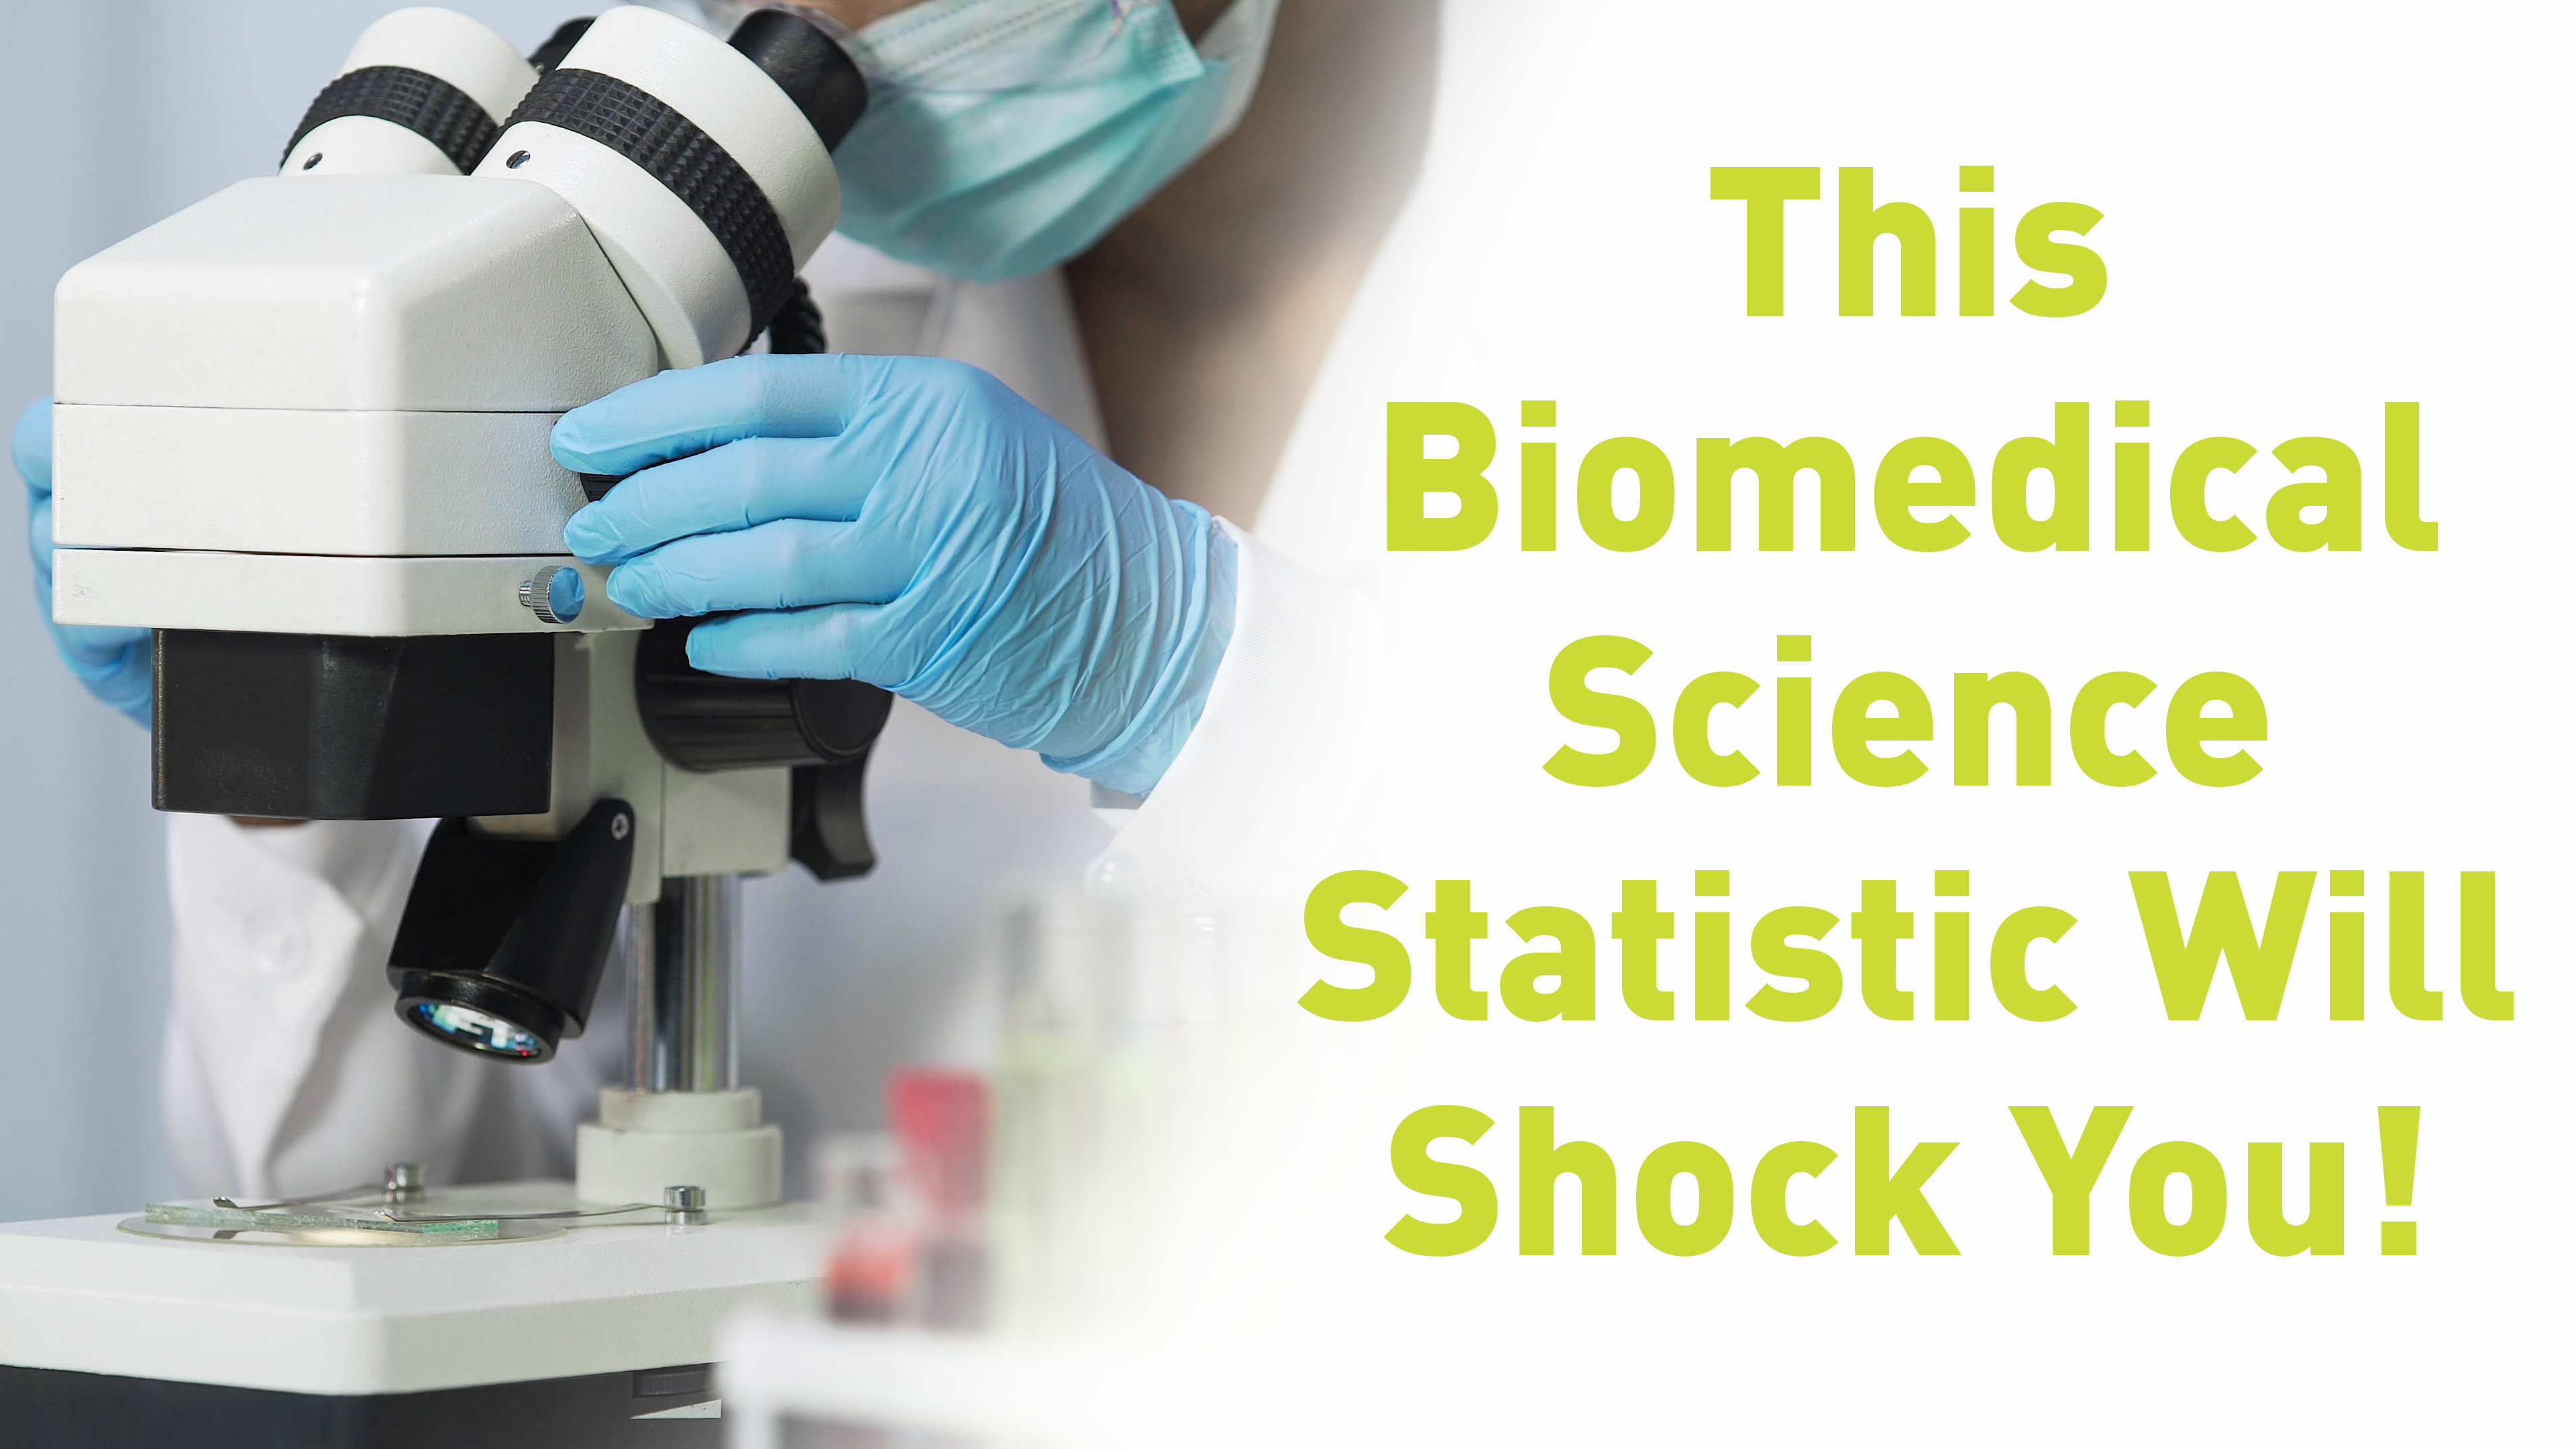 If you're a Biomedical Scientist, you're part of an elite group!